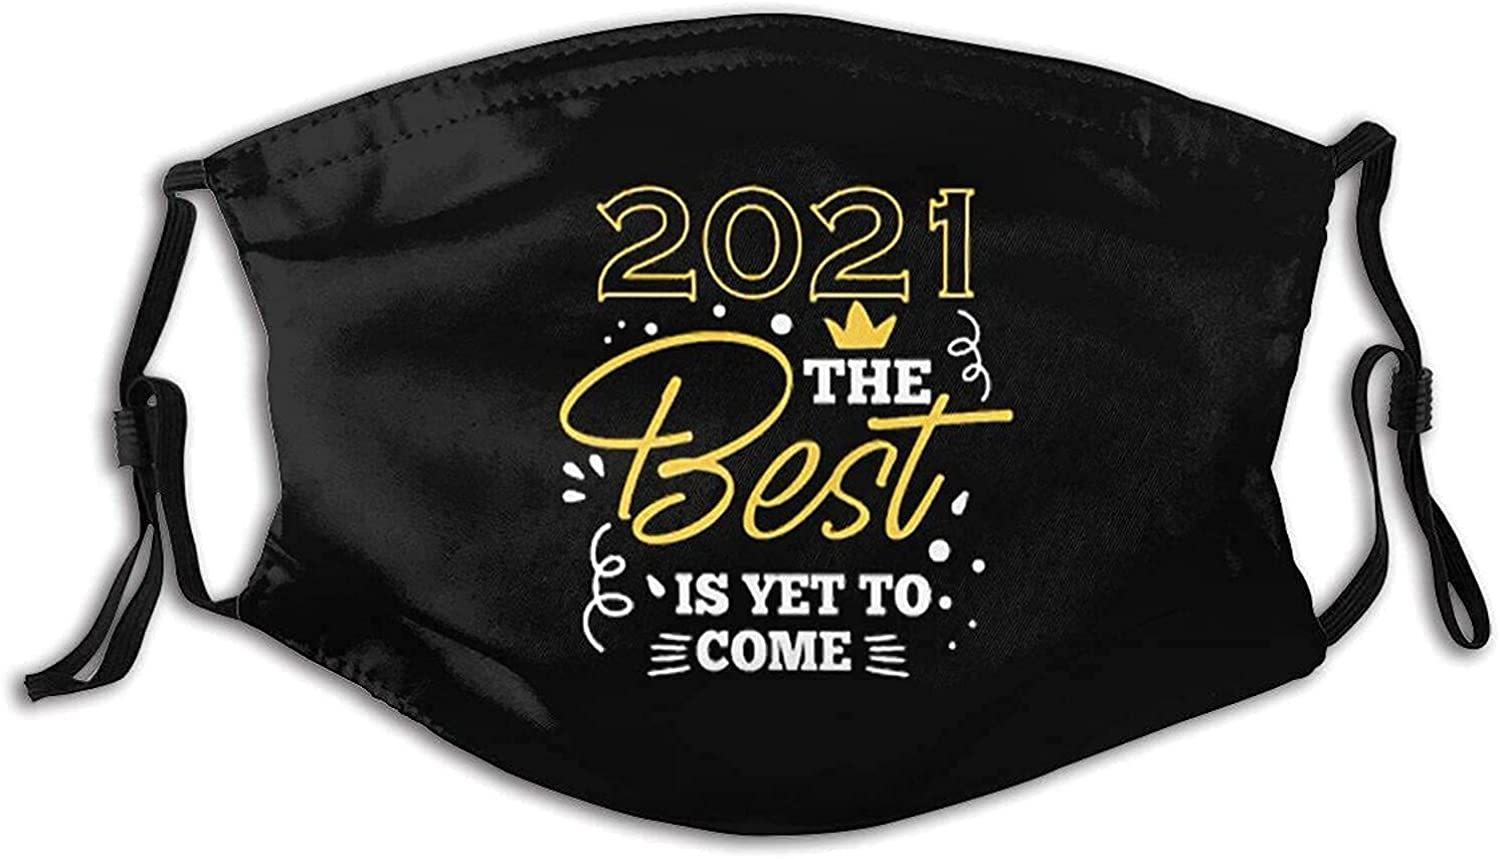 The Best is Yet to Come Face Mask, Neck Warmer Scarf Headband Balaclava Multifunction Unisex Windproof Breathable Washable Bandanas